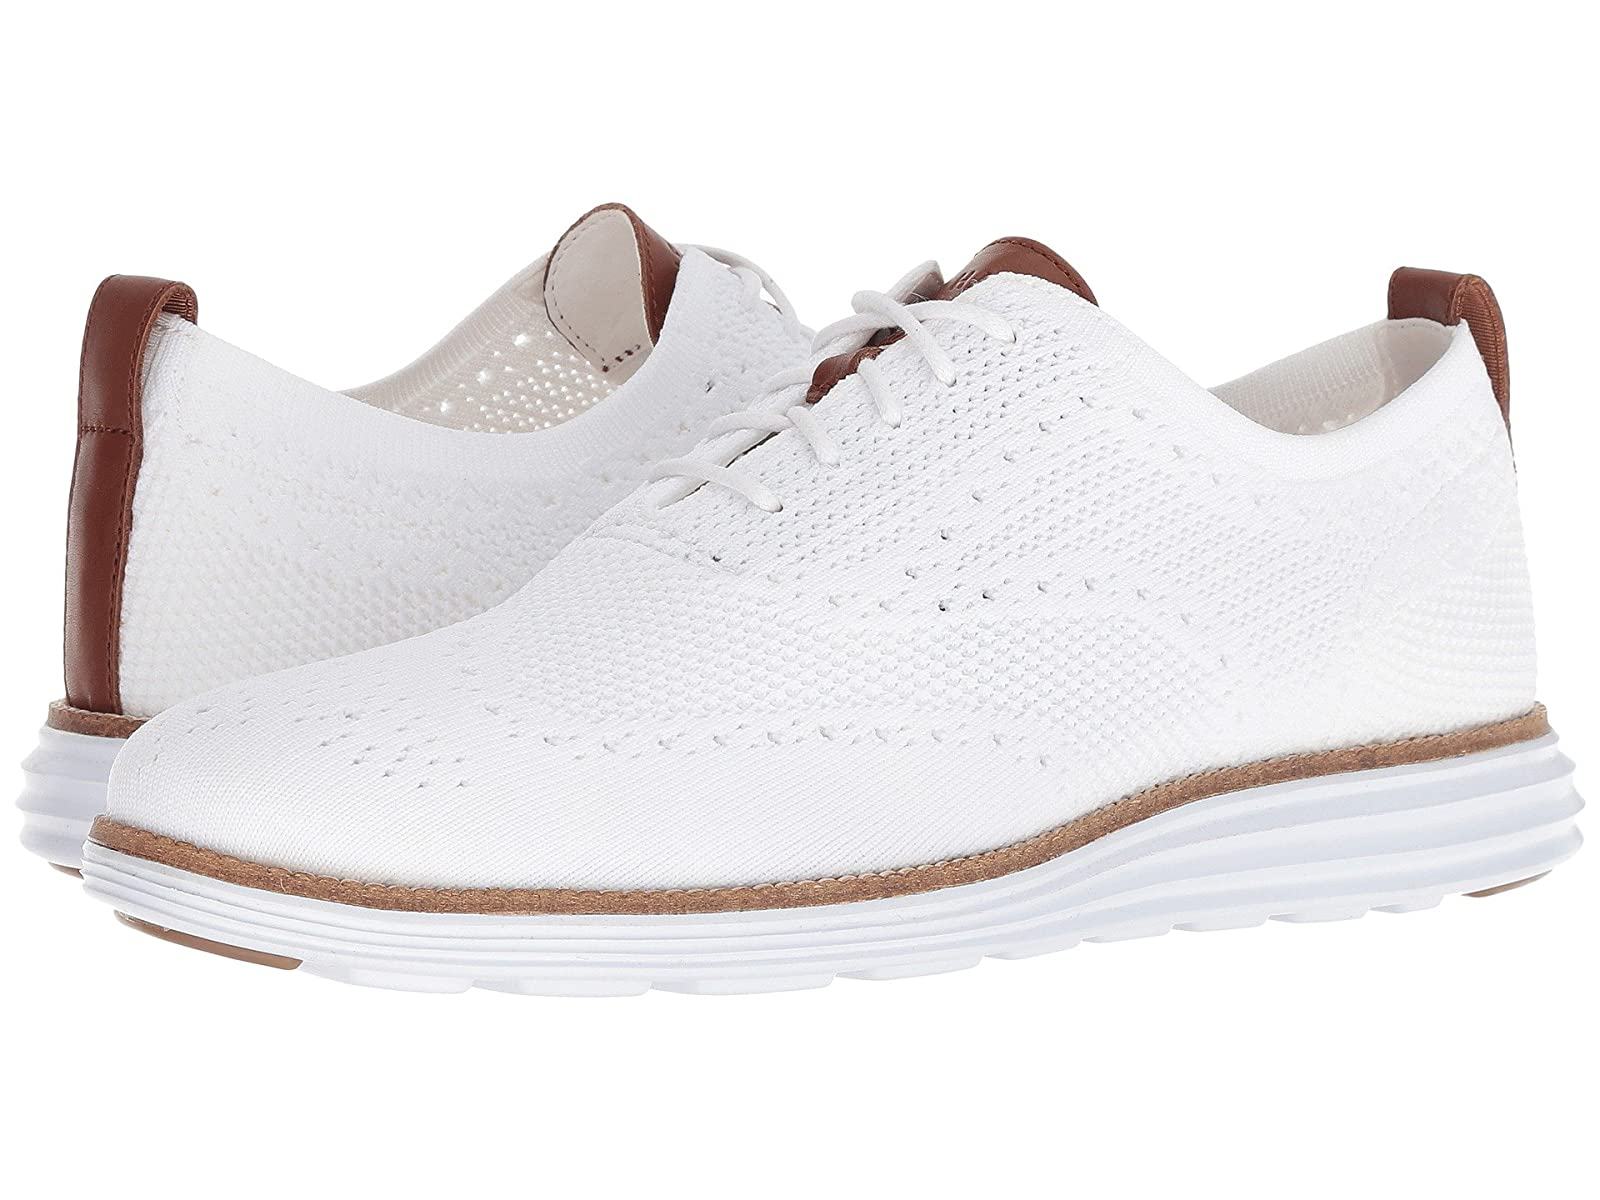 Cole Haan Original Grand Stitchlite Wingtip OxfordCheap and distinctive eye-catching shoes